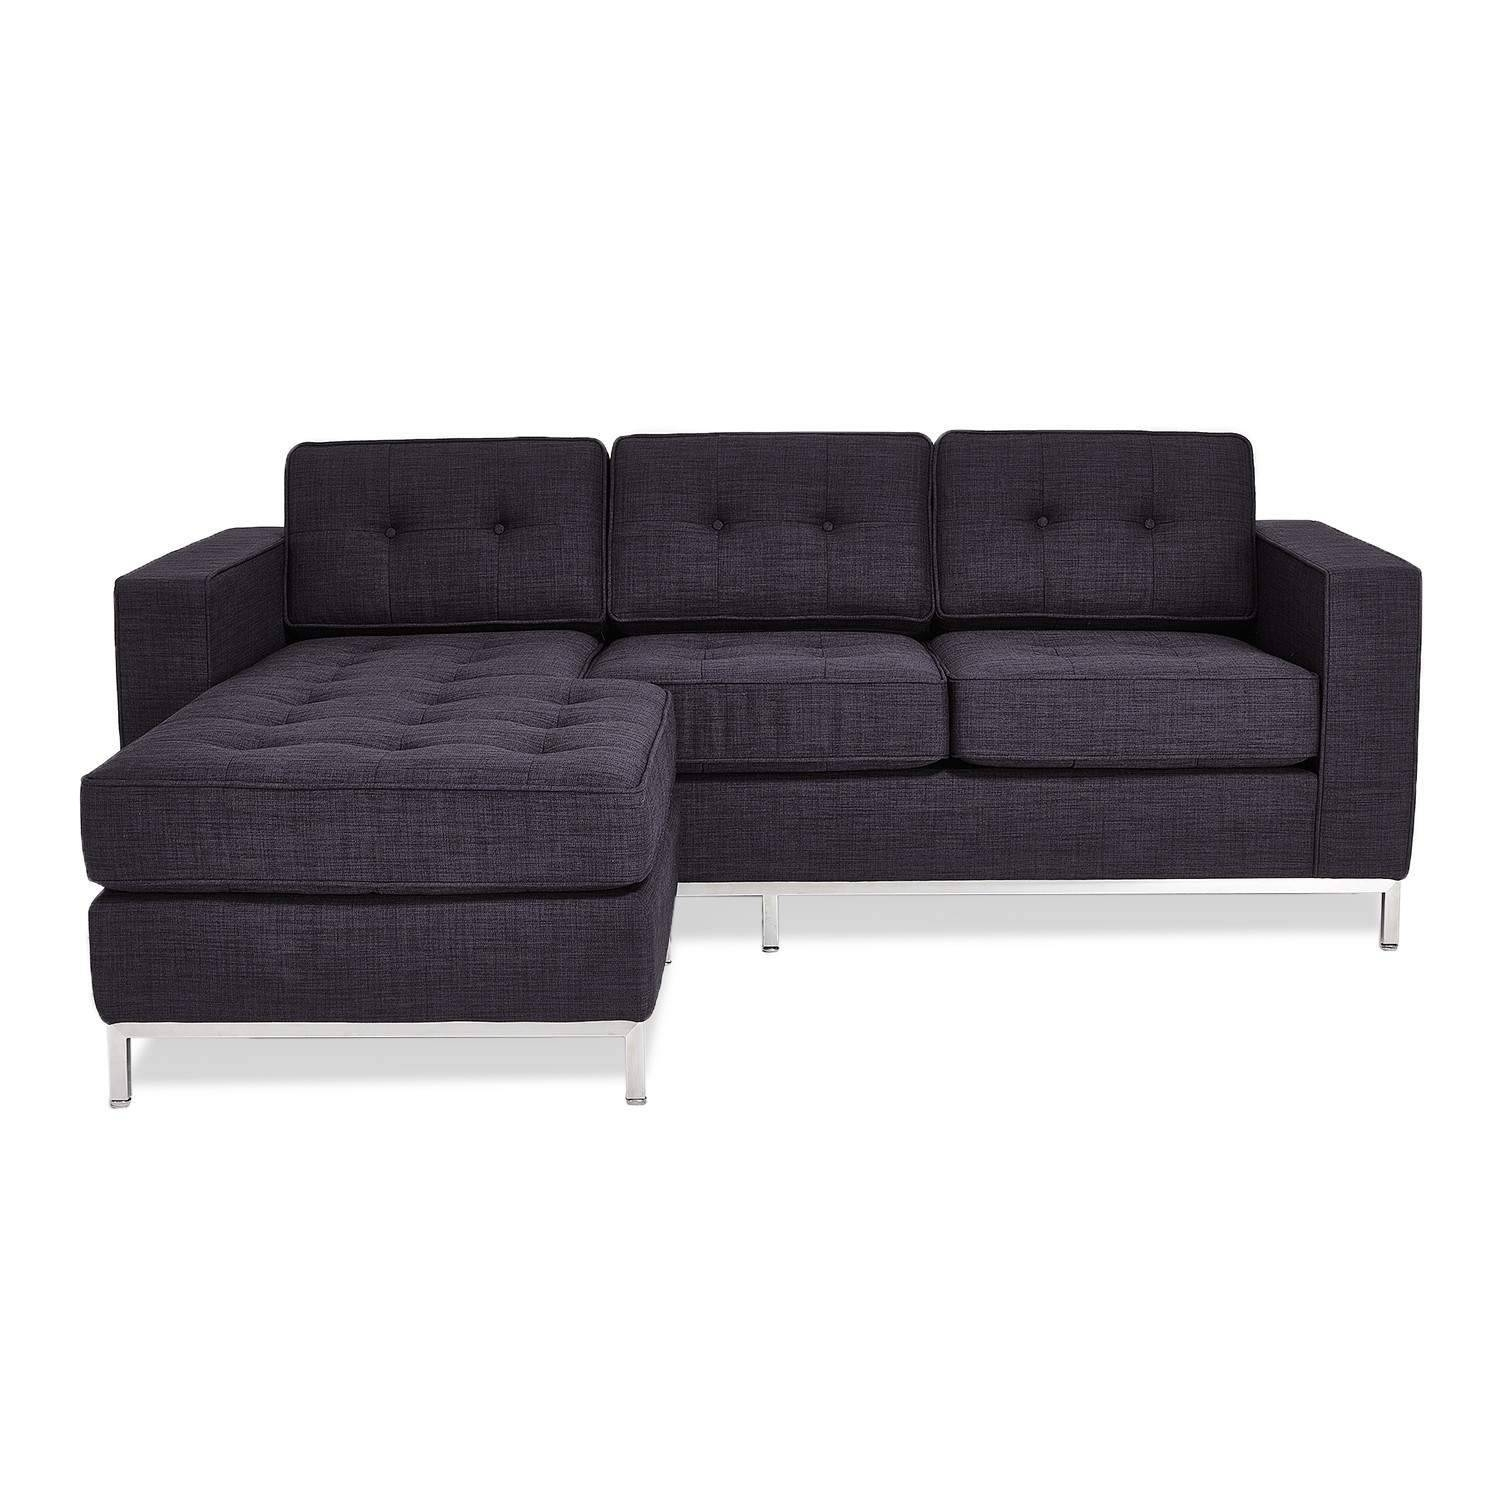 Gus* Modern Jane Loft Bi-Sectional – Abc Carpet & Home with Jane Bi Sectional Sofa (Image 11 of 30)